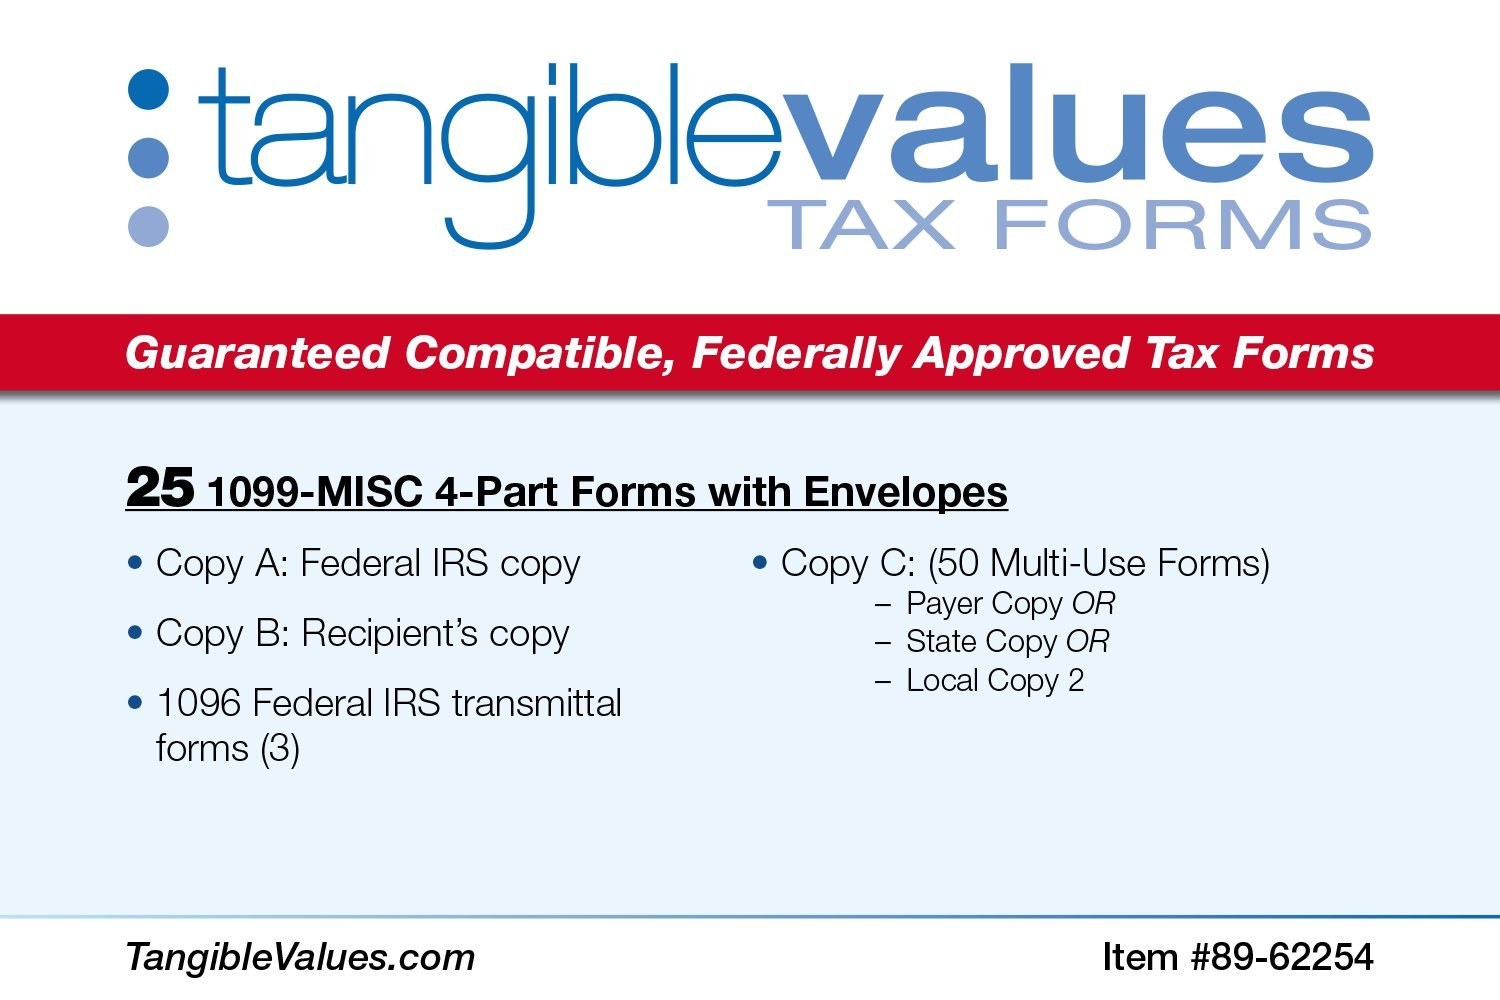 Amazon tangible values 1099 misc laser forms 4 part kit with amazon tangible values 1099 misc laser forms 4 part kit with env for 25 vendors 3 form 1096s 2017 tax forms office products falaconquin